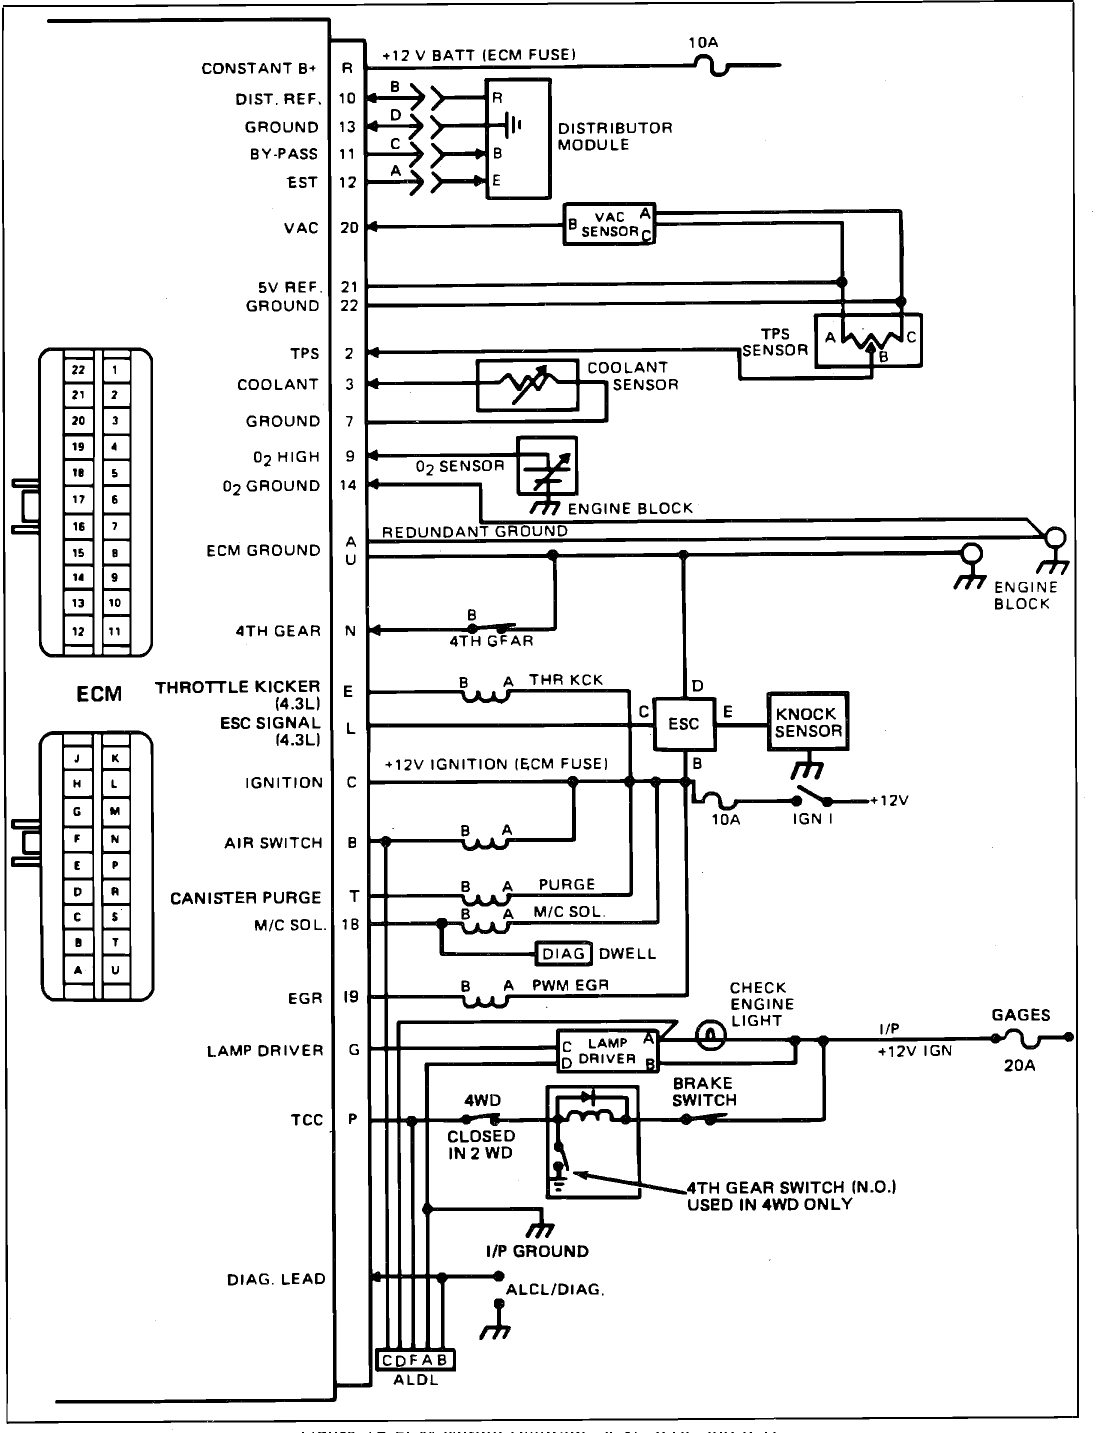 hight resolution of 1995 chevy g20 van wiring diagram wiring diagram load 1995 chevy g20 stereo wiring diagram 1995